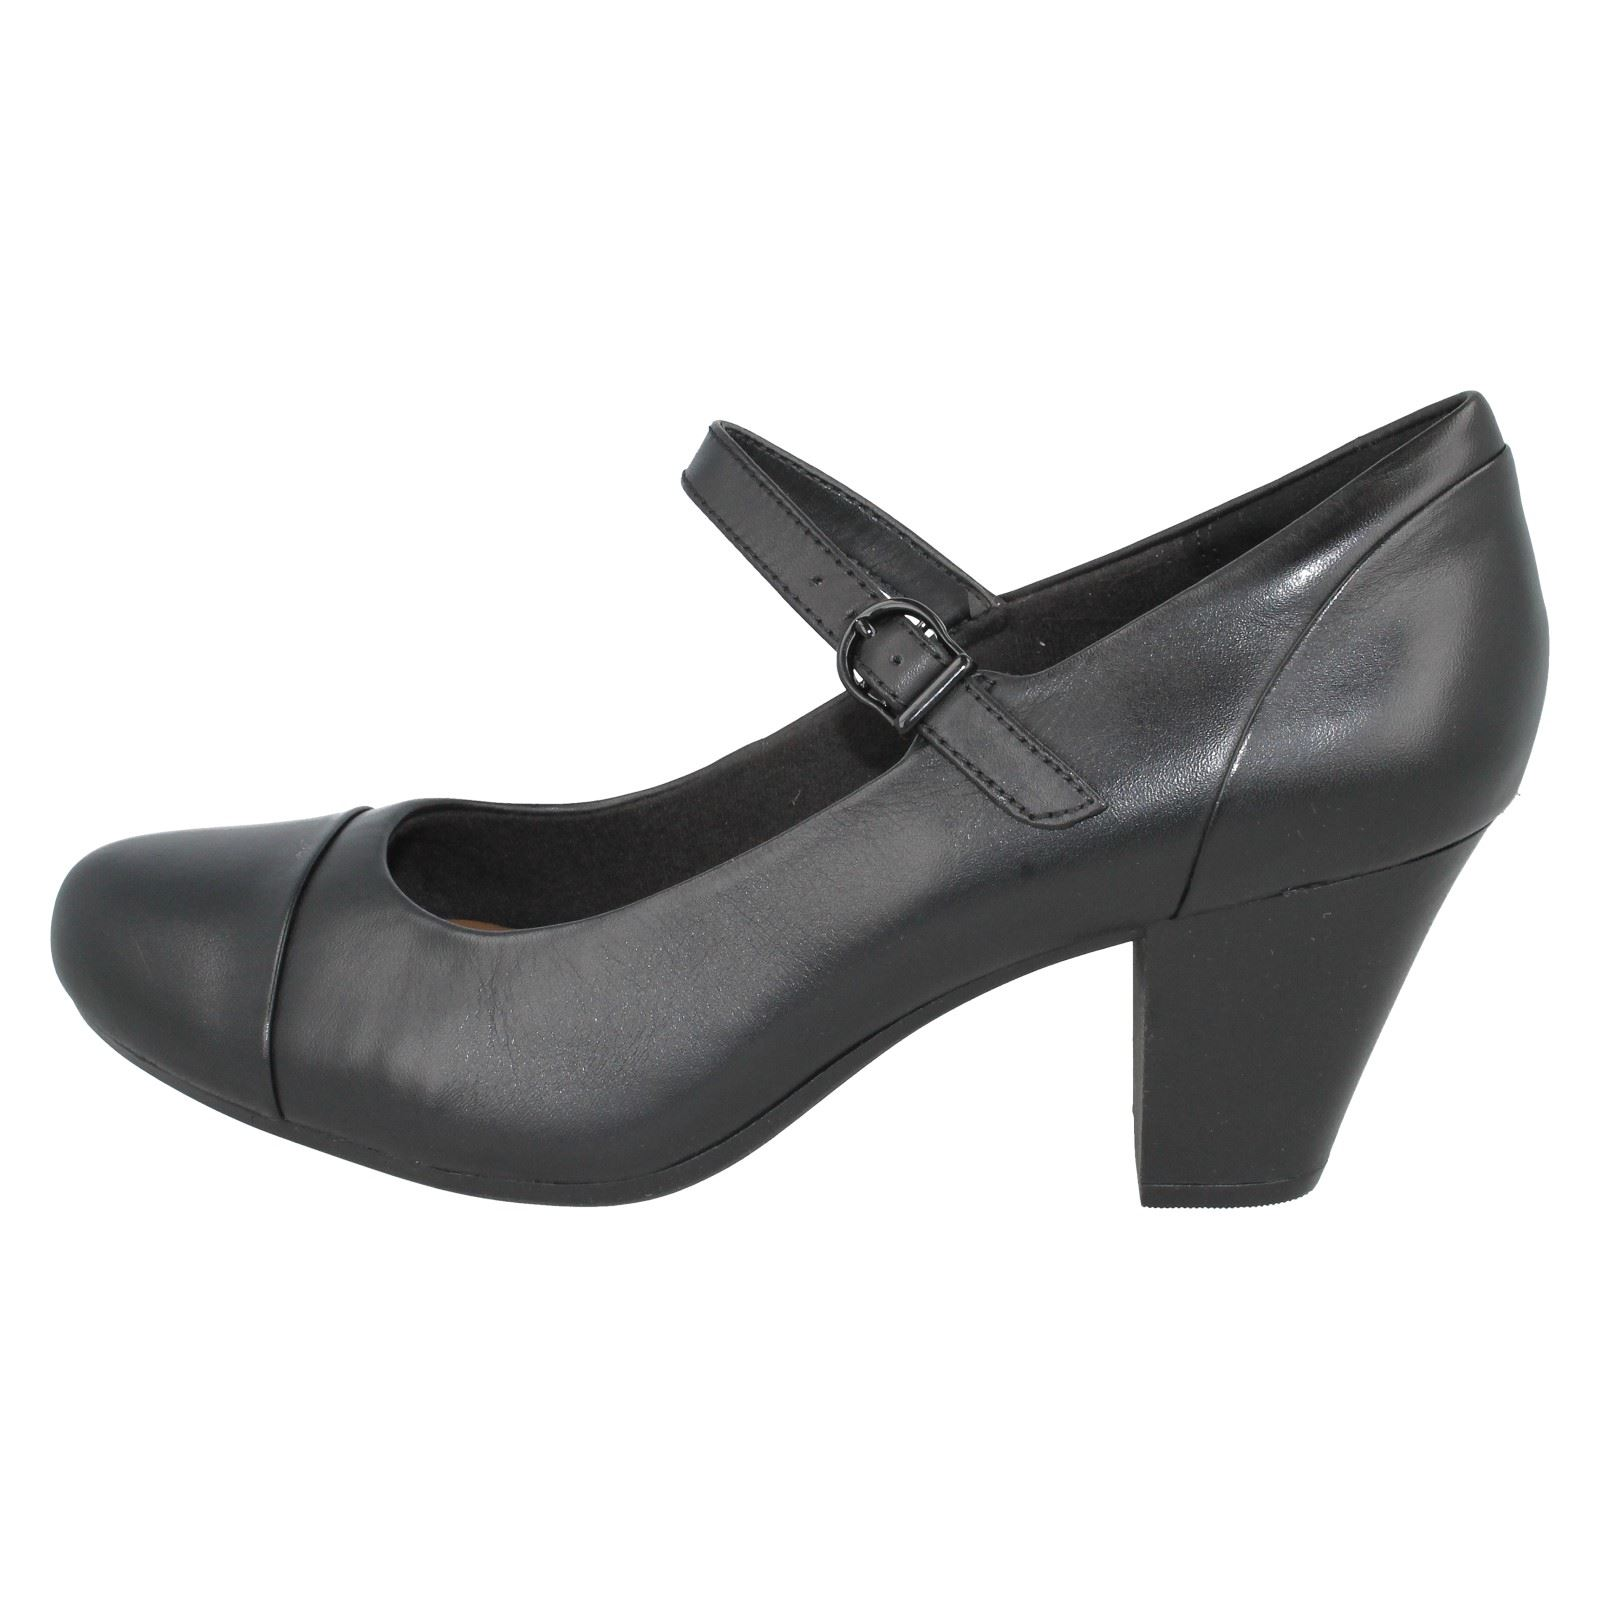 Leather Ladies N Shoes Style Tianna Black Garnit ~ Clarks Court UPqz7